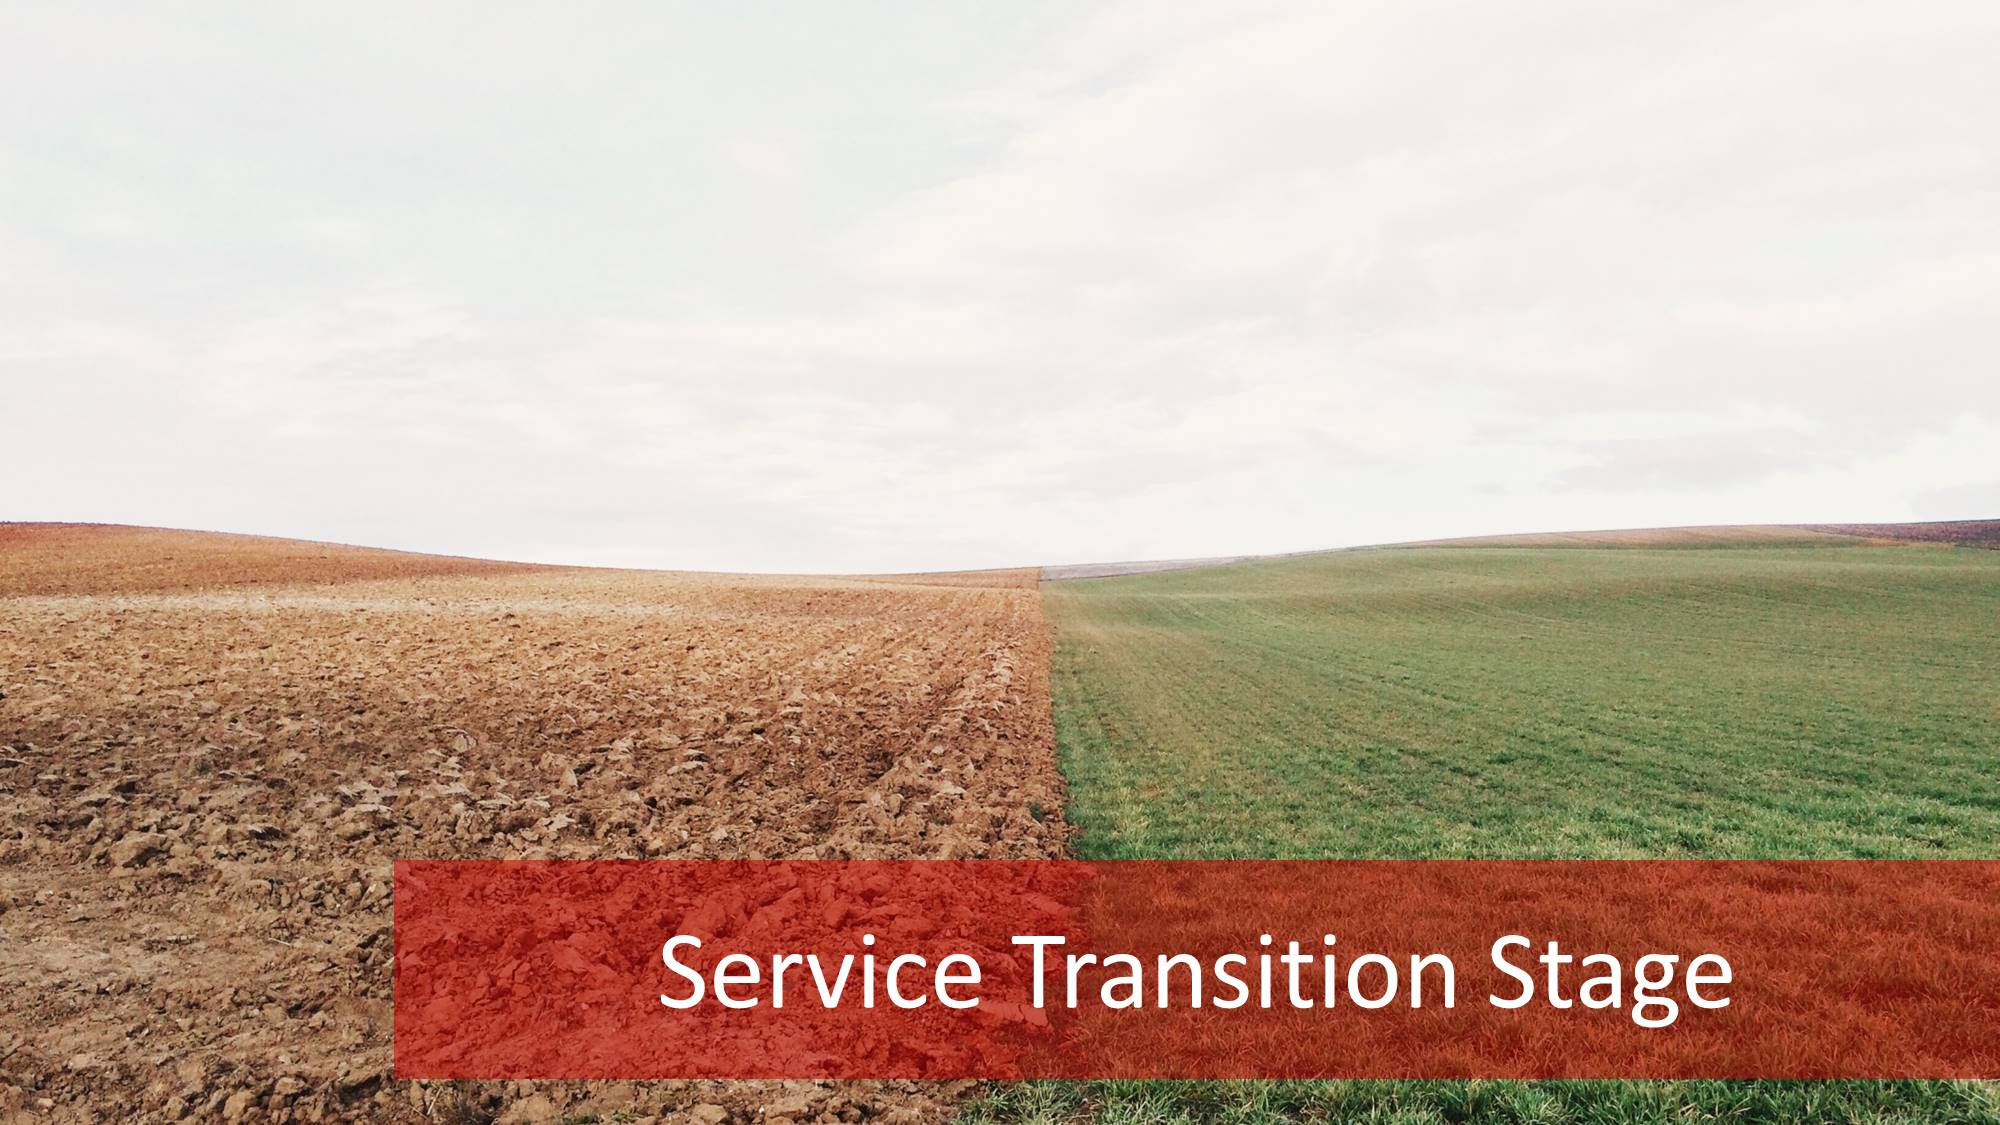 Itil Service Transition What Is The Role Of Itil Service Transition